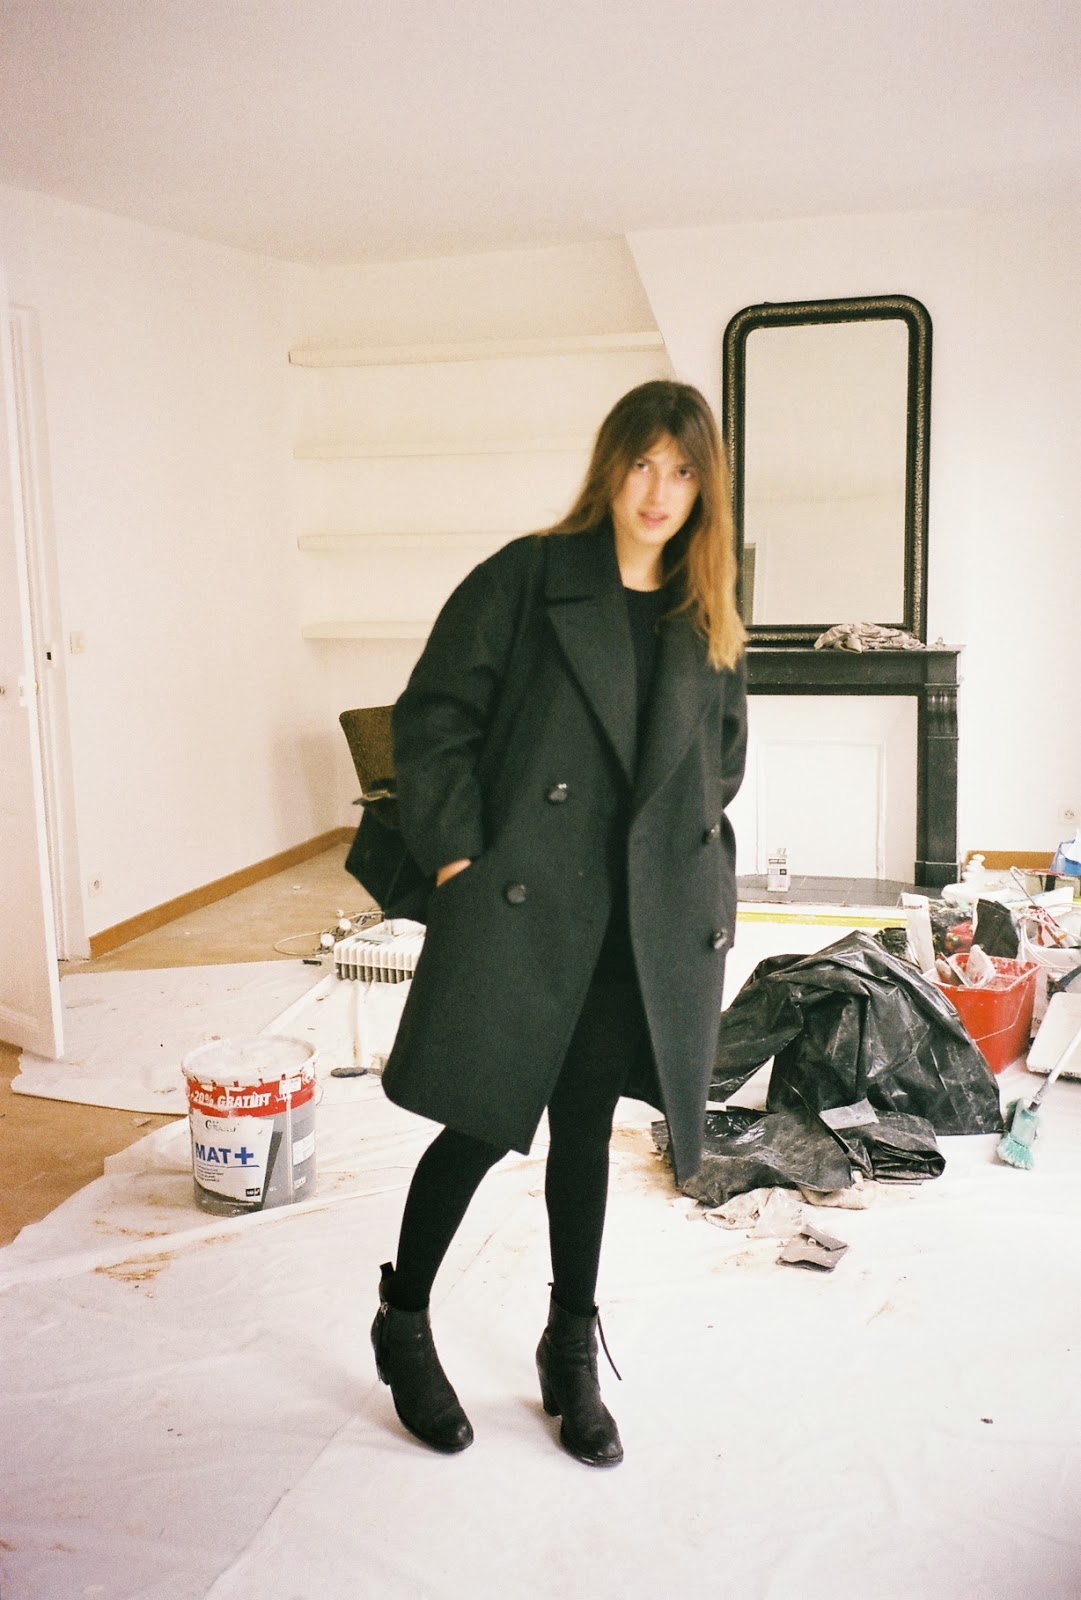 1000 images about jeanne damas on pinterest other stories dressing and parisians. Black Bedroom Furniture Sets. Home Design Ideas